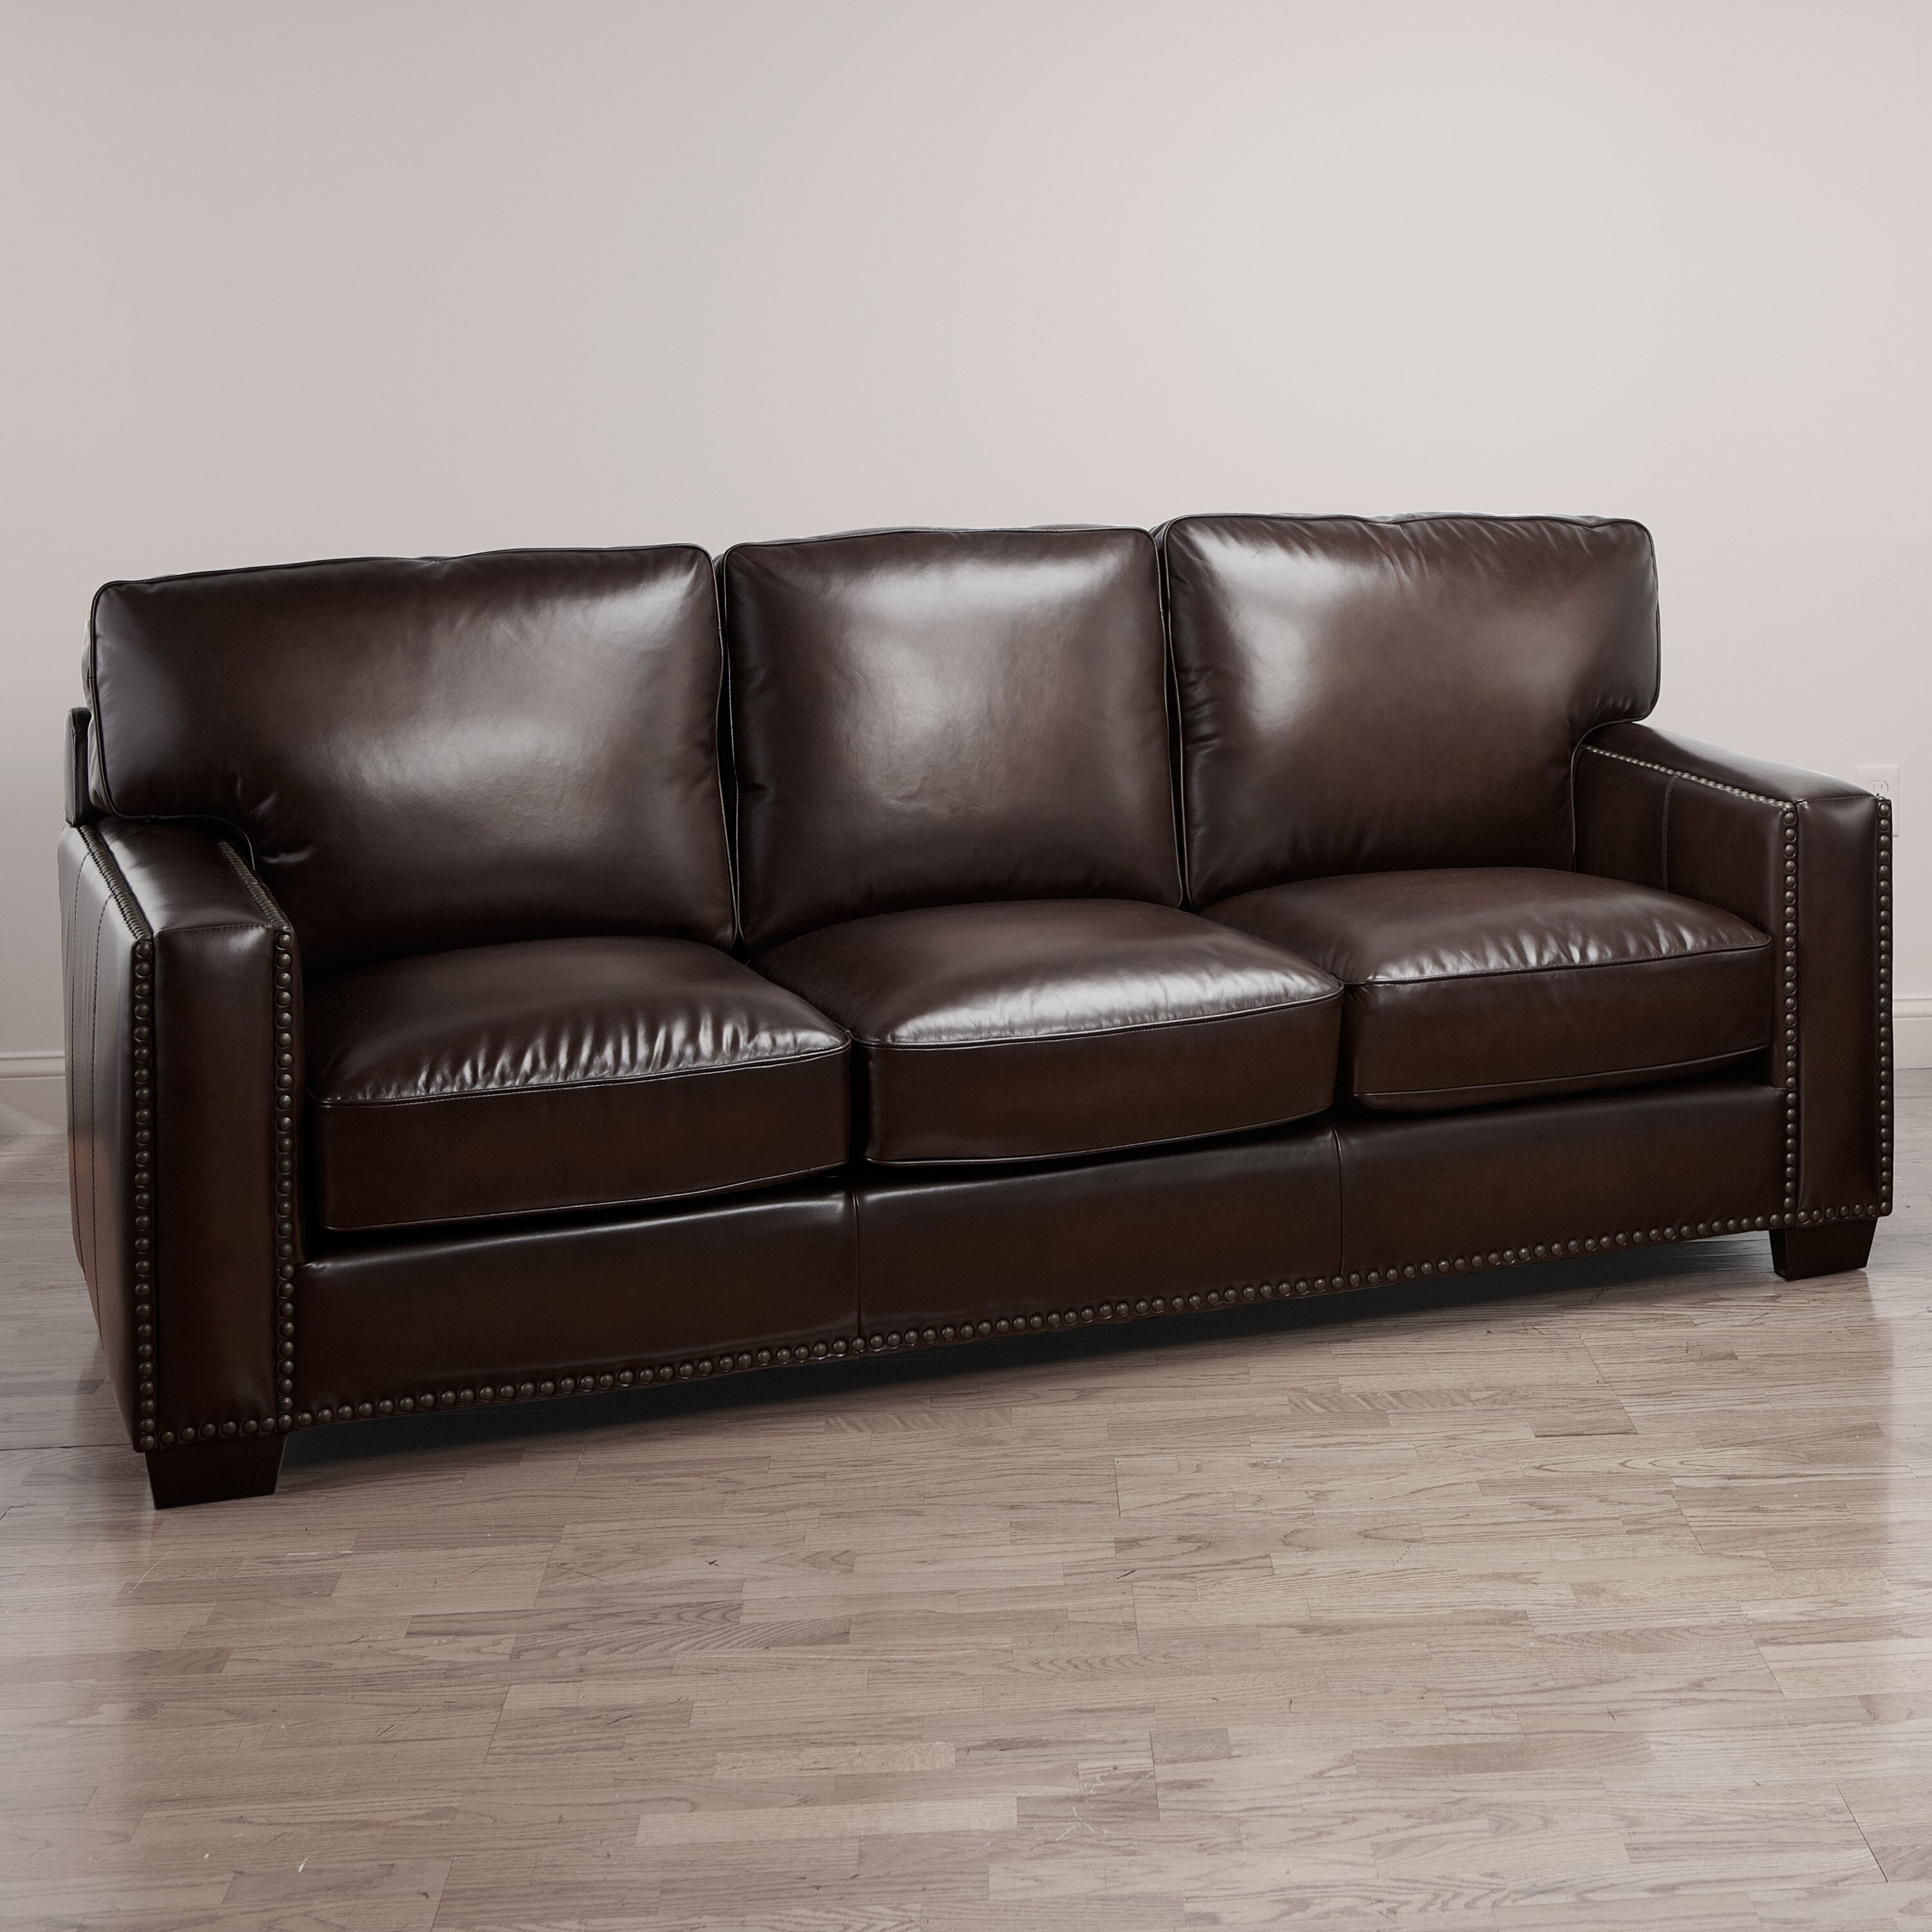 Decoro Campaign Stationary Leather Living Room Set